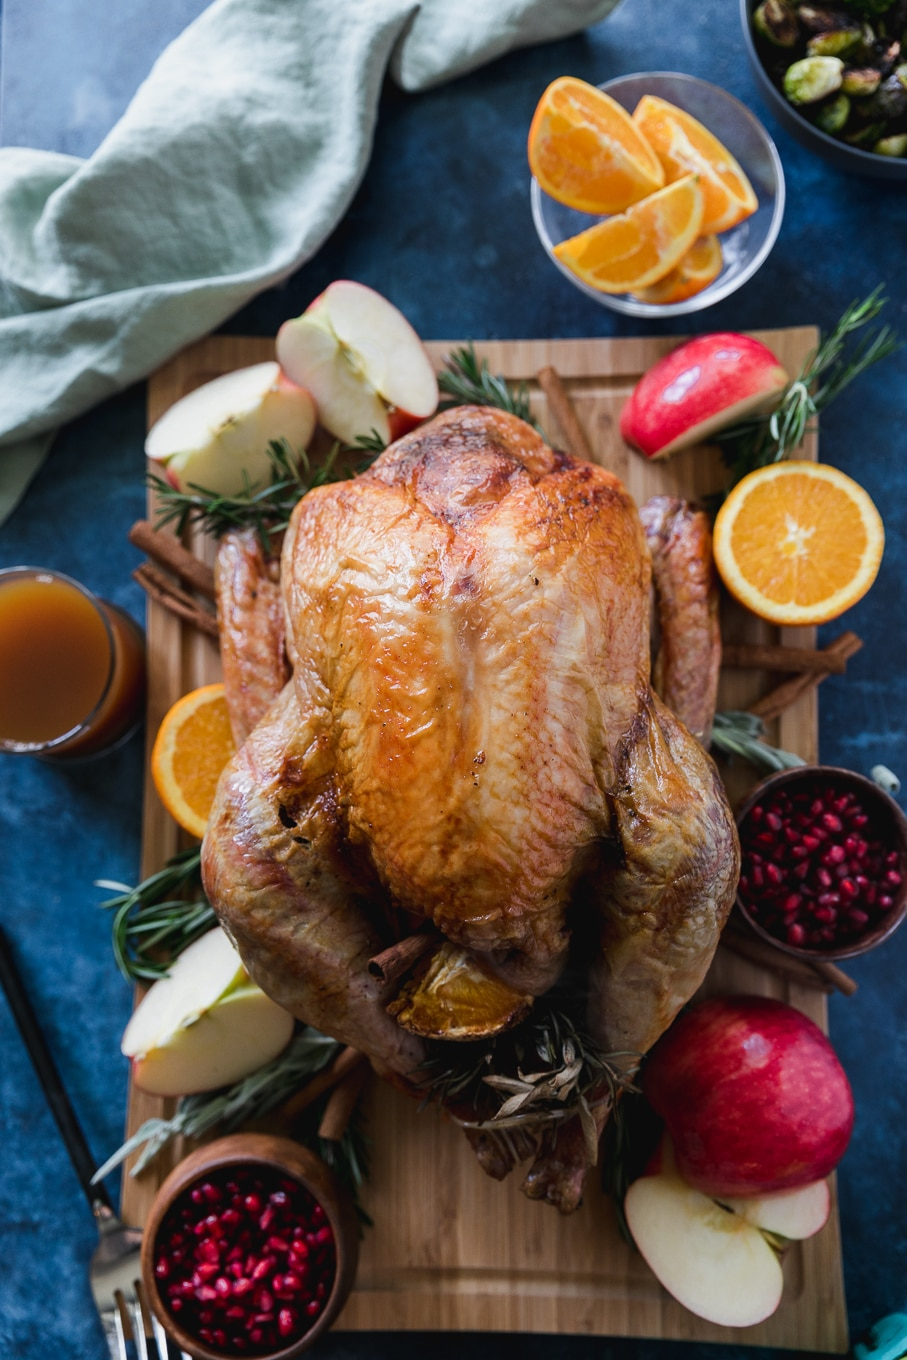 Overhead shot of a roasted whole turkey on a wooden cutting board on a blue background, surrounded by apples, pomegranate arils, oranges, and fresh herbs